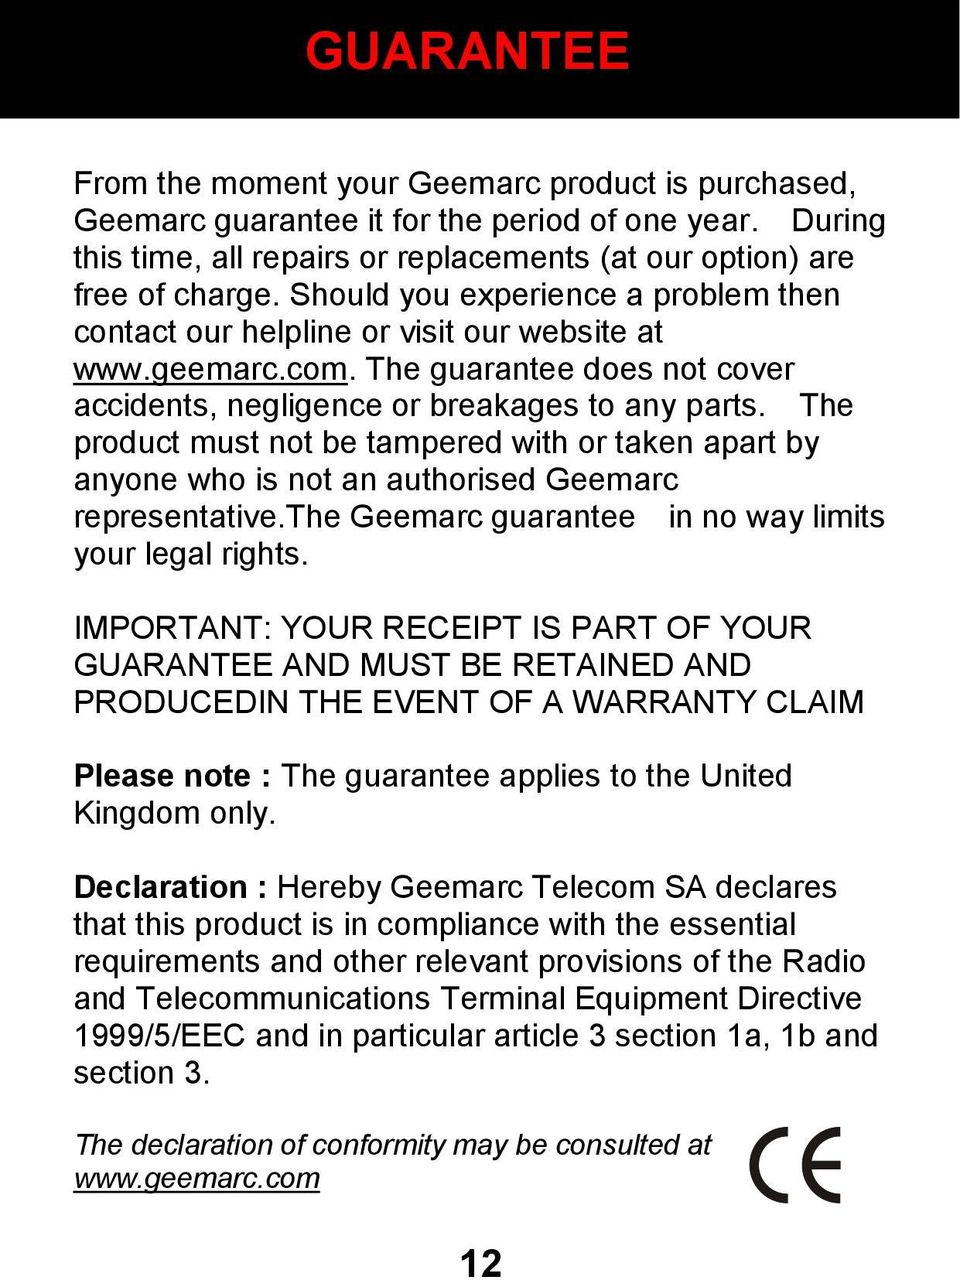 The product must not be tampered with or taken apart by anyone who is not an authorised Geemarc representative.the Geemarc guarantee in no way limits your legal rights.